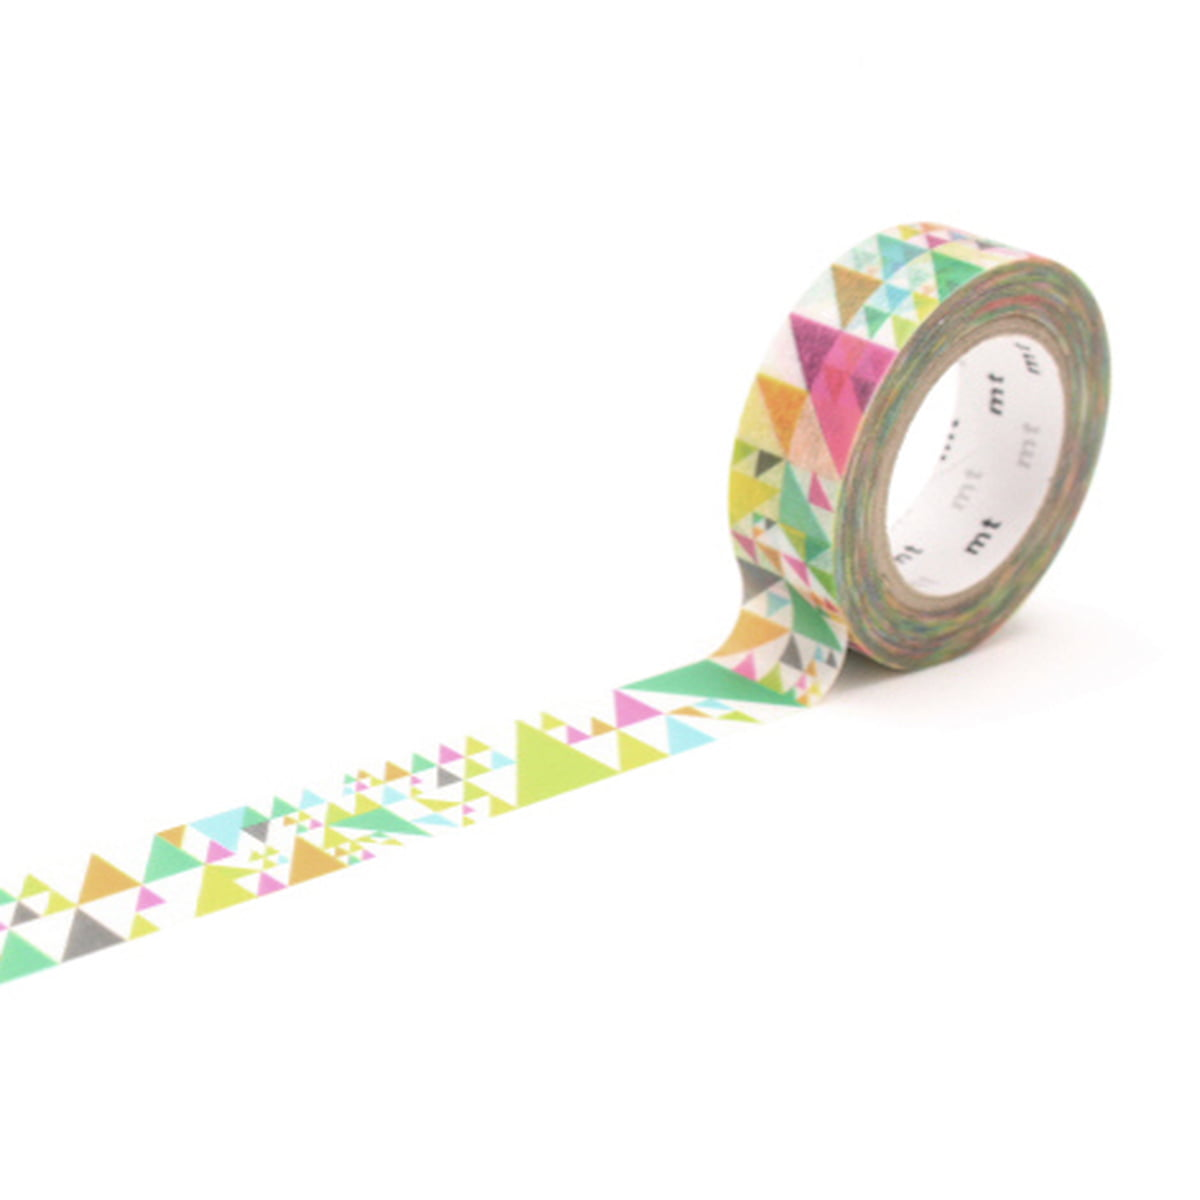 Masking Tape with geometrical patterns